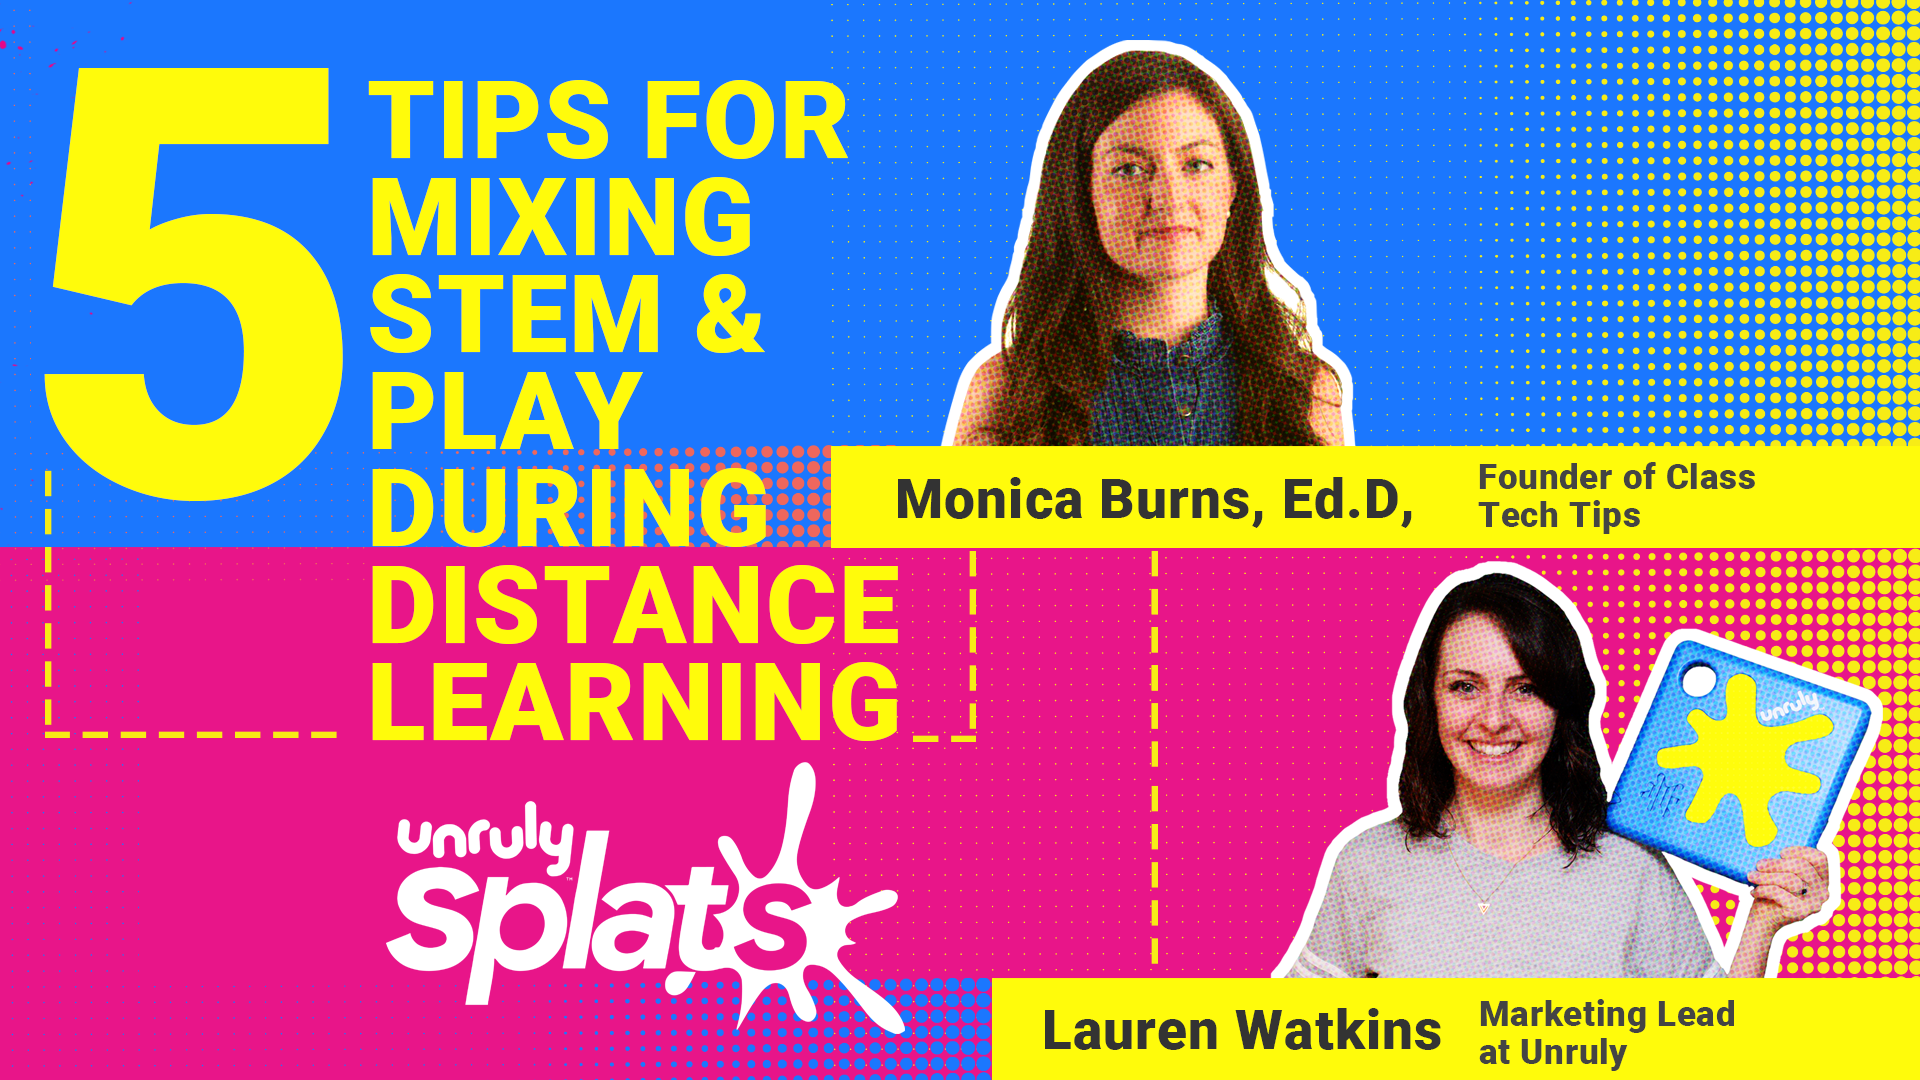 STEM Webinar - Tips for Mixing STEM and Play During Distance Learning